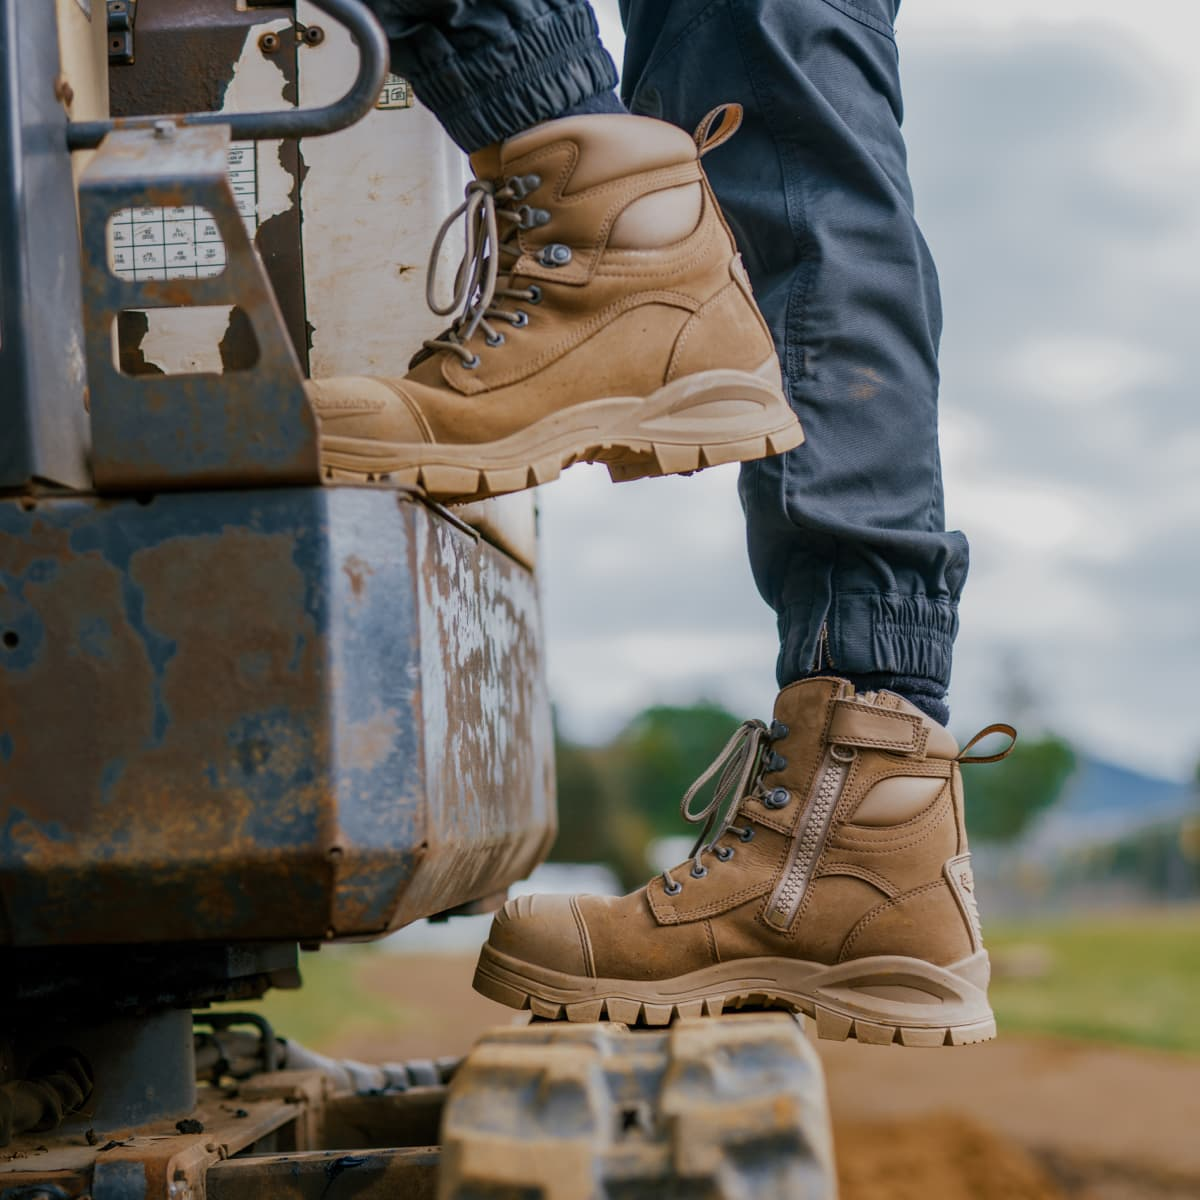 Blundstone 984 work boot on a construction site